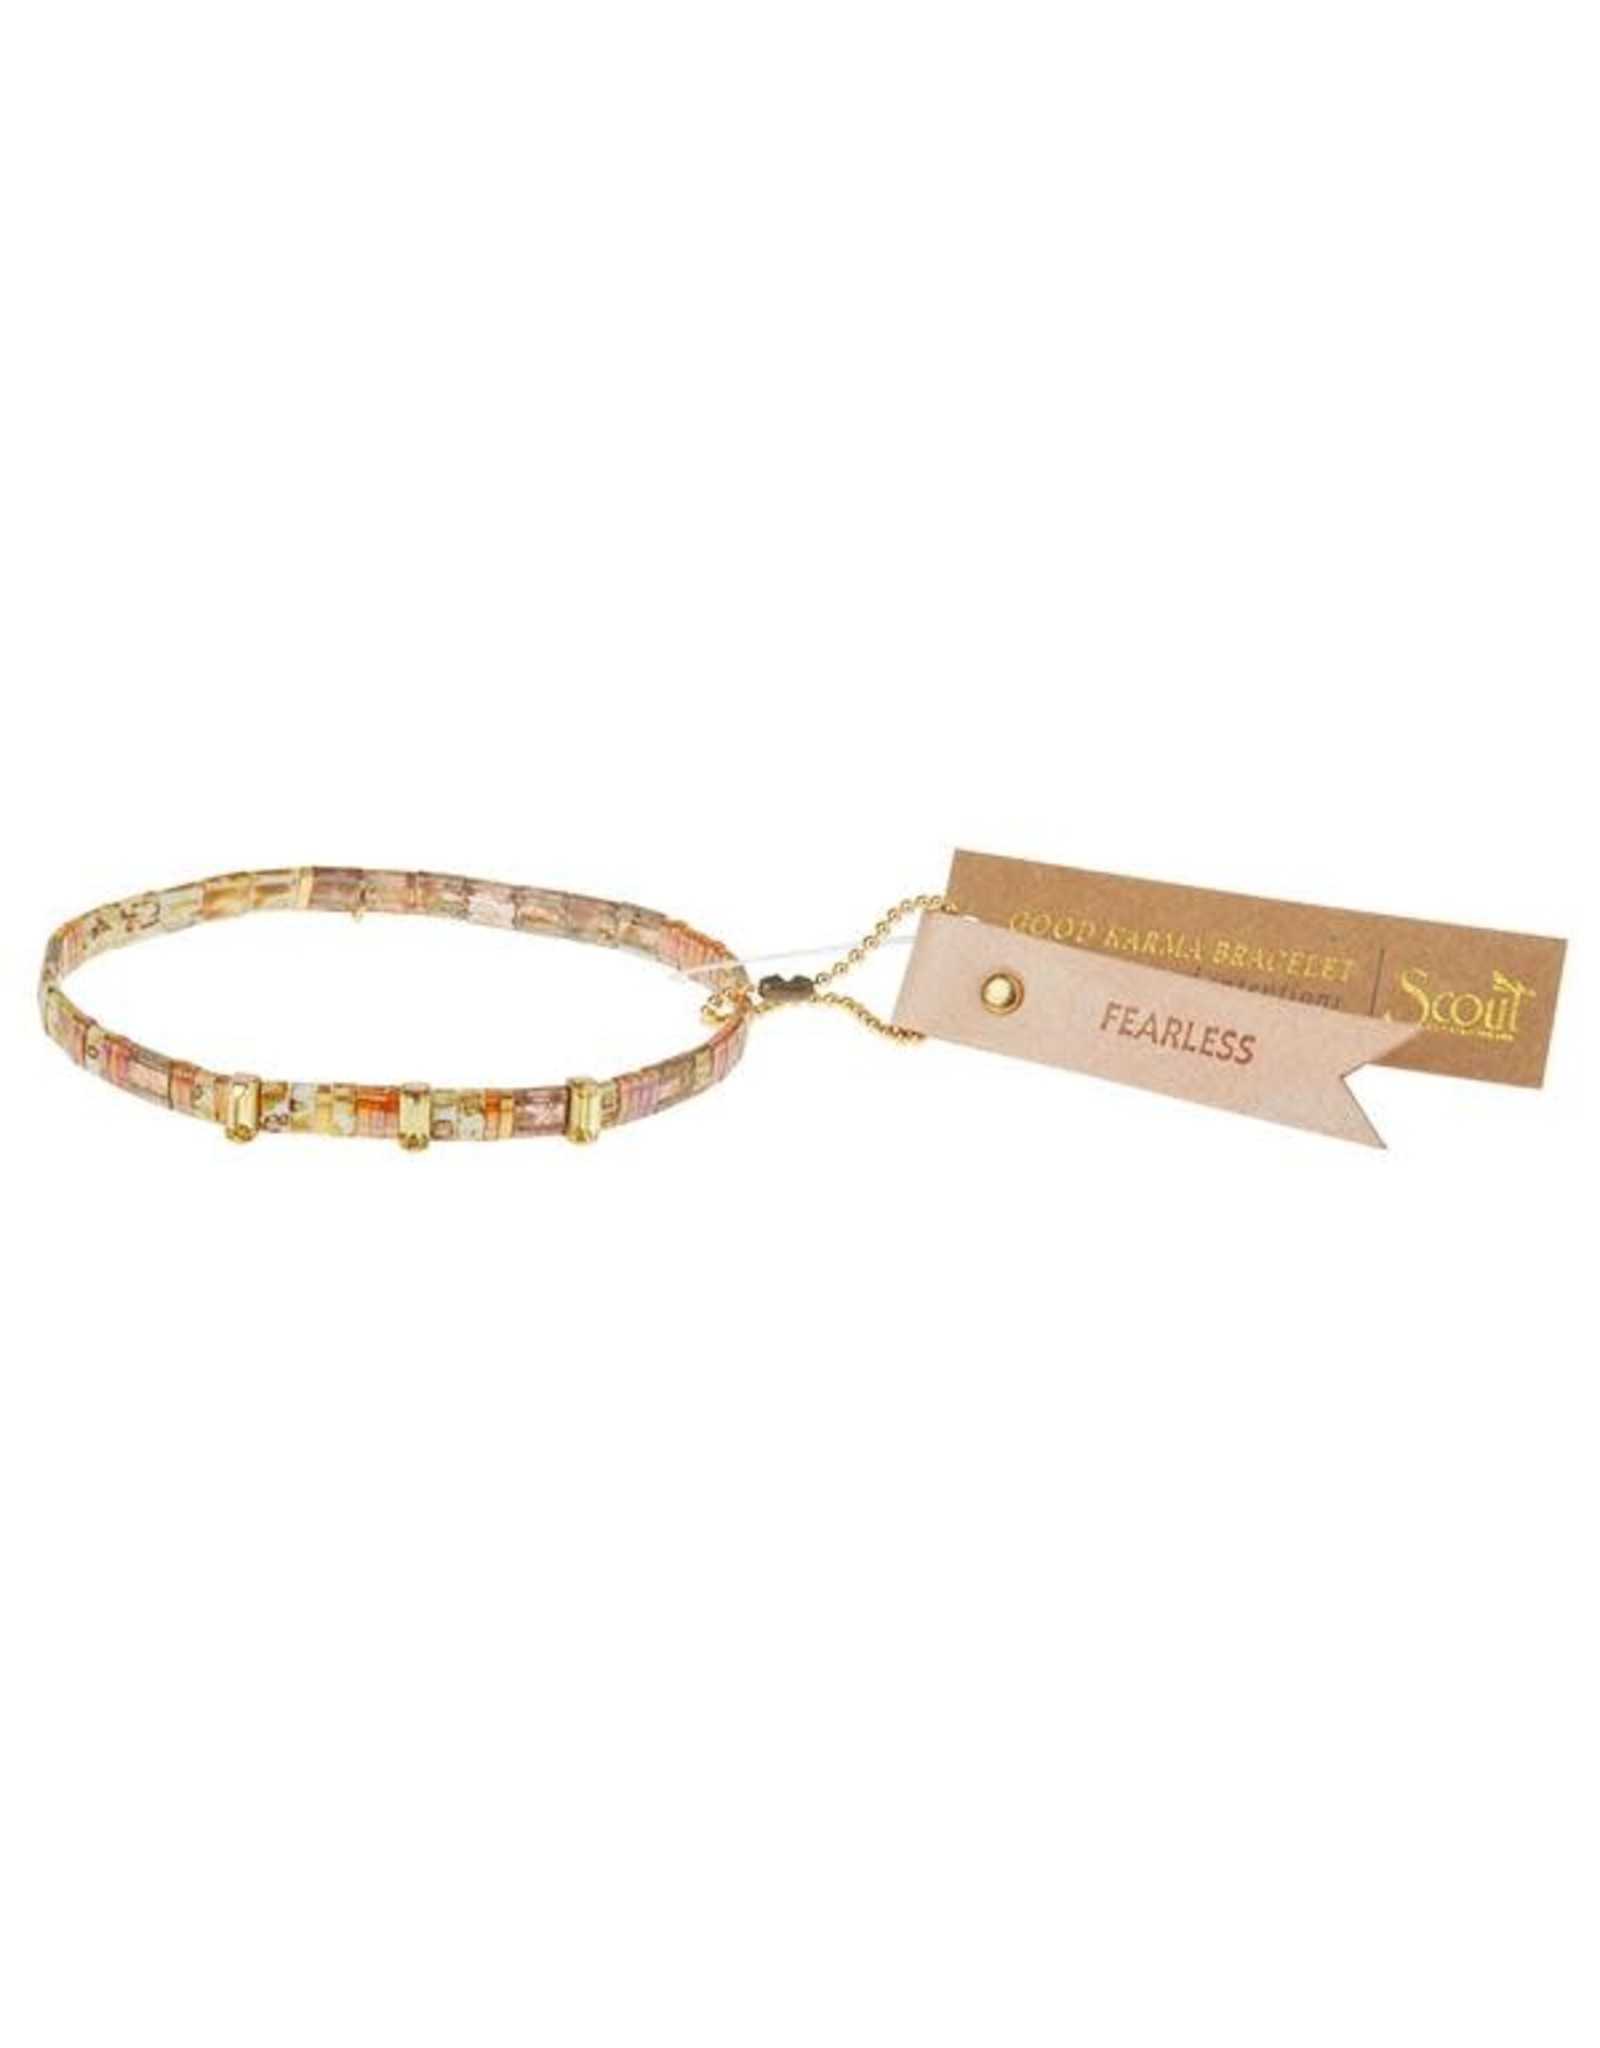 Scout Good Karma -Fearless- Tortoise/Sparkle/Gold